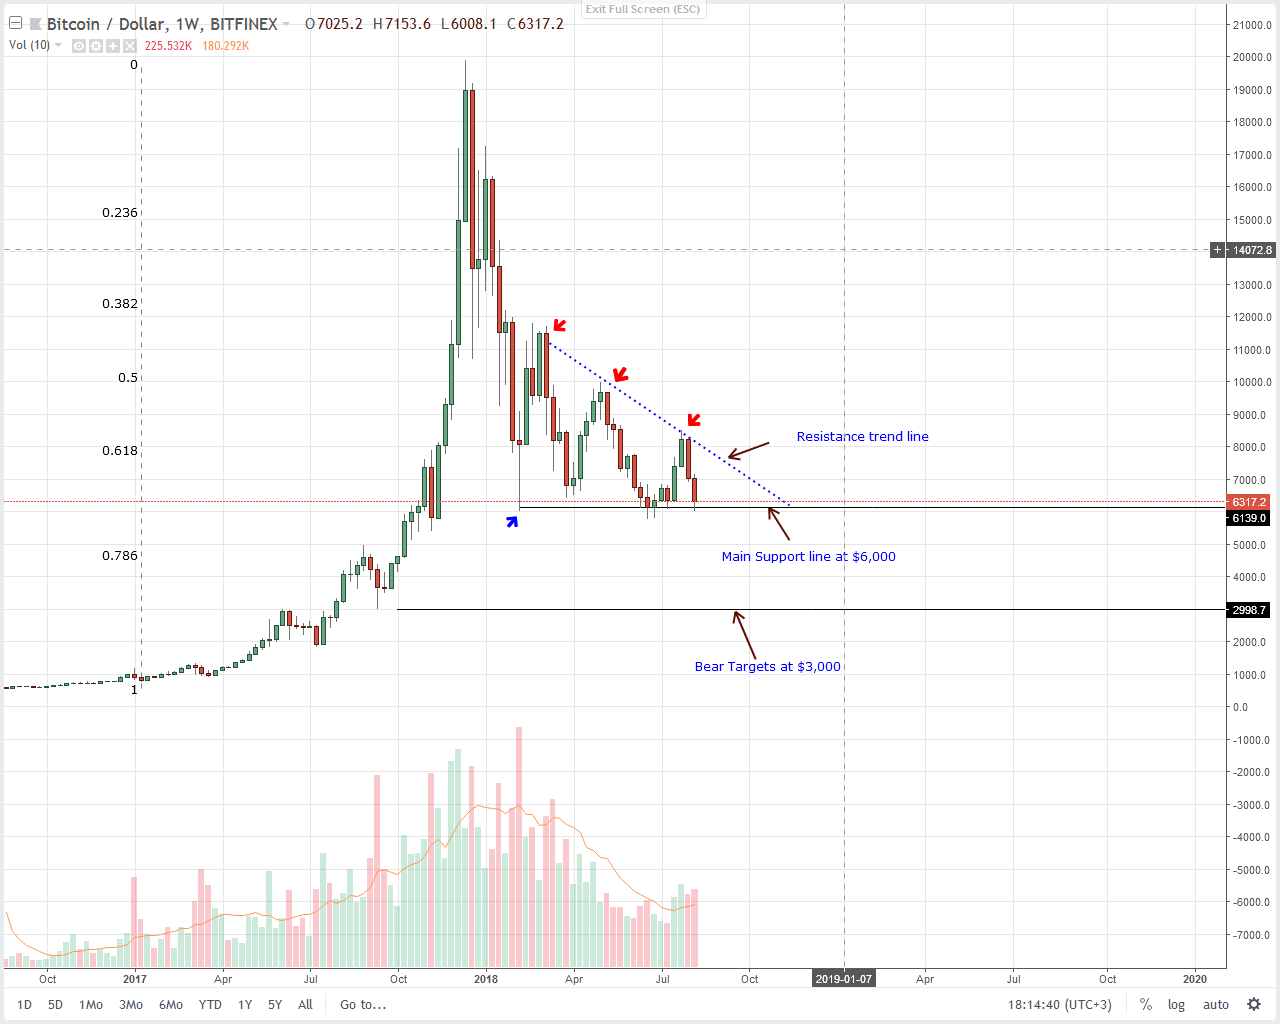 Bitcoin (BTC) Technical Analysis